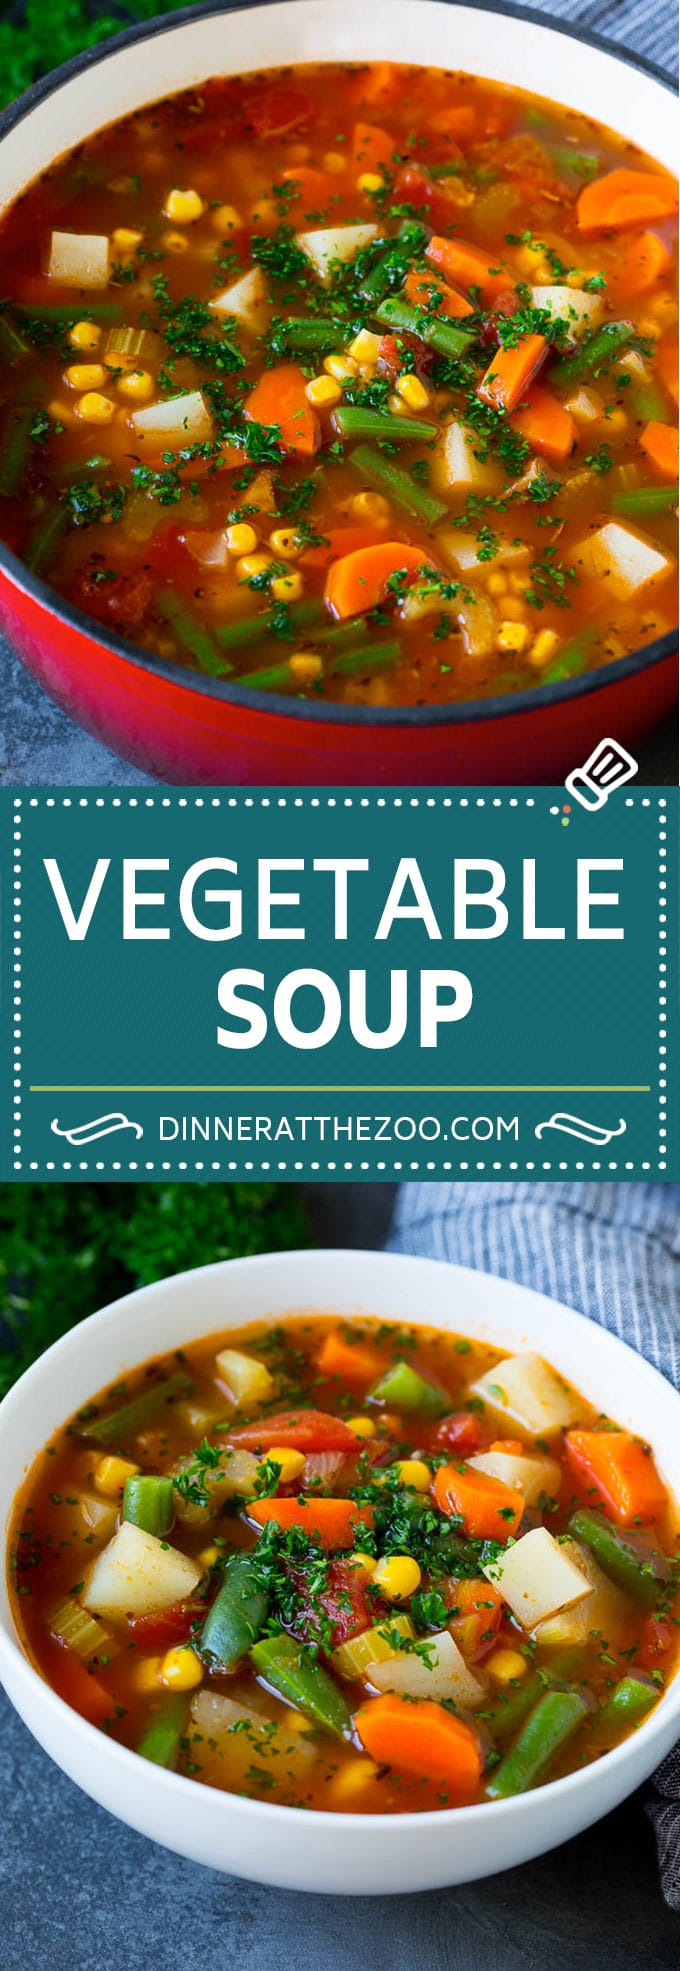 Vegetable Soup Recipe #soup #vegetable #vegetarian #vegan #dinner #healthy #dinneratthezoo #glutenfree